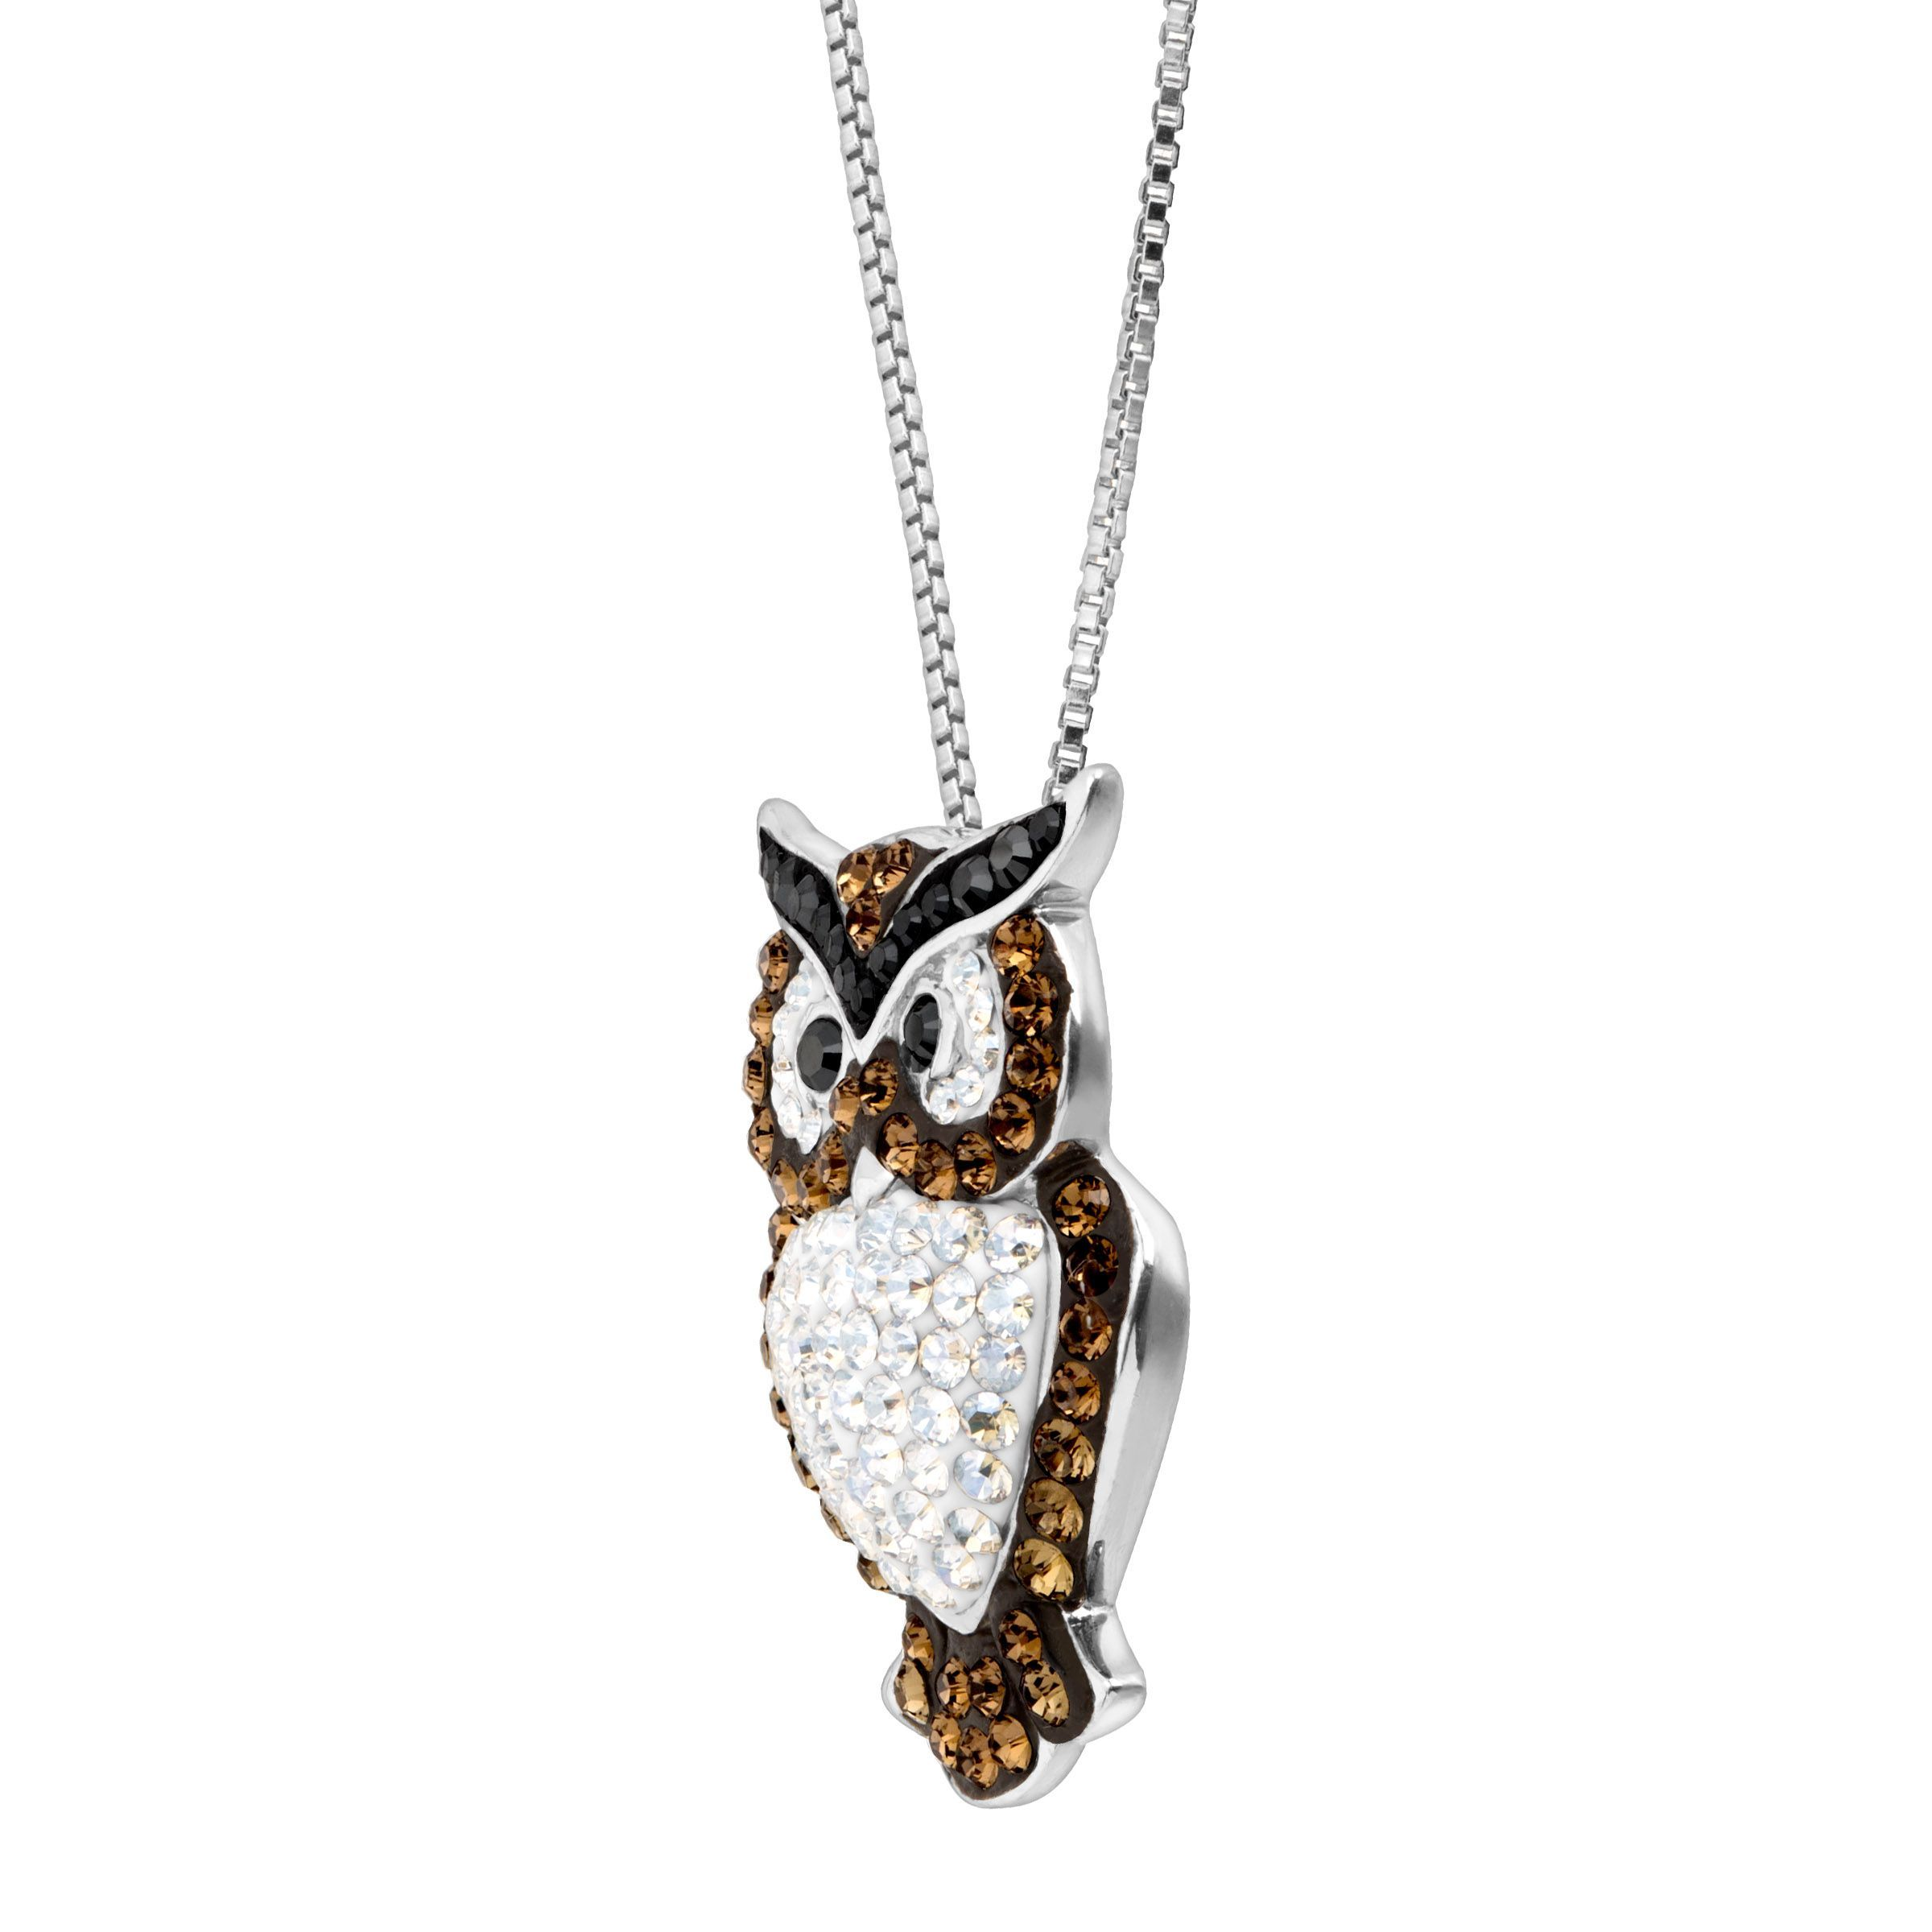 91f77a4820567 Details about Crystaluxe Owl Pendant with Swarovski Crystals in Sterling  Silver